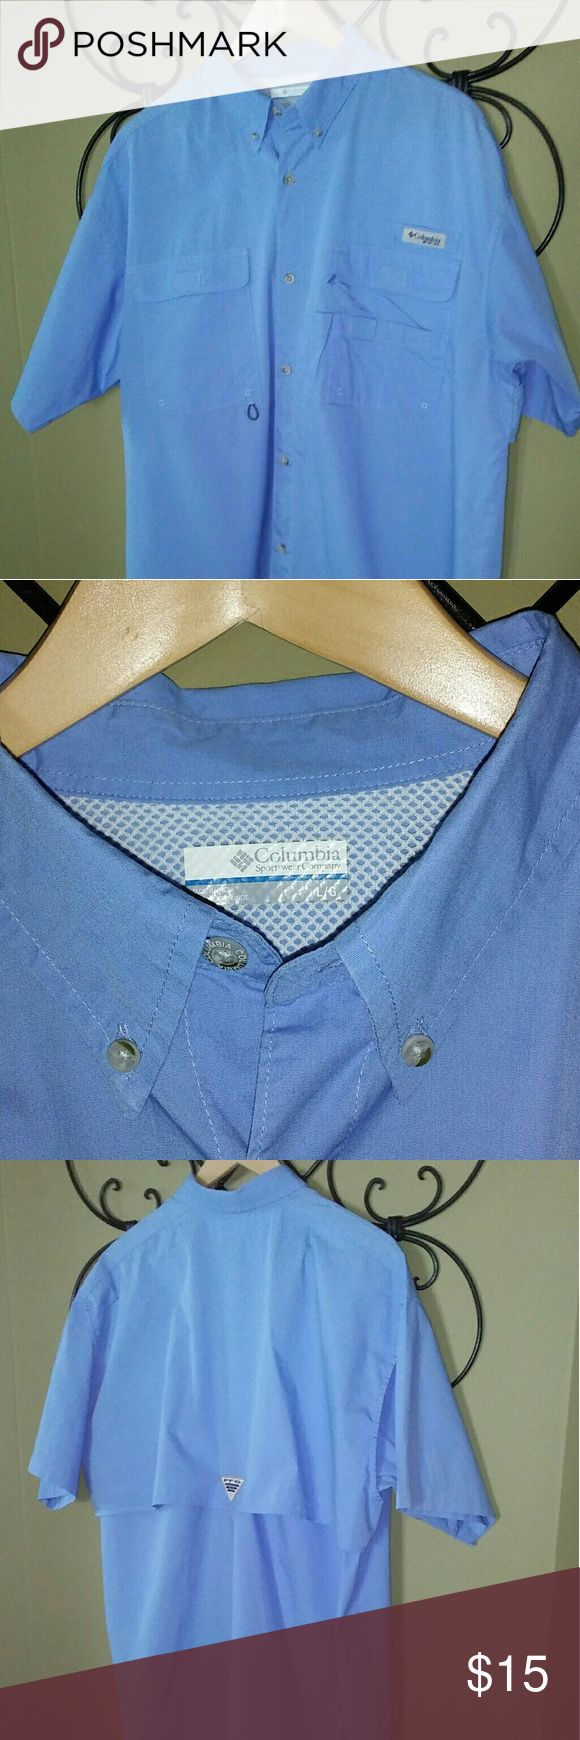 COLUMBIA PFG SHIRT NWOT Re-Poshing  Purchased NWOT for hubby but it is to large 🙁 Seems Columbia shirts run a little large and my husband prefers his shirts a little tighter Fits a true LARGE a little baggy....if you prefer a tighter fit then it will be perfect for an XLARGE Gorgeous sky blue color Vented back yoke Short sleeve P&SFH Columbia Shirts